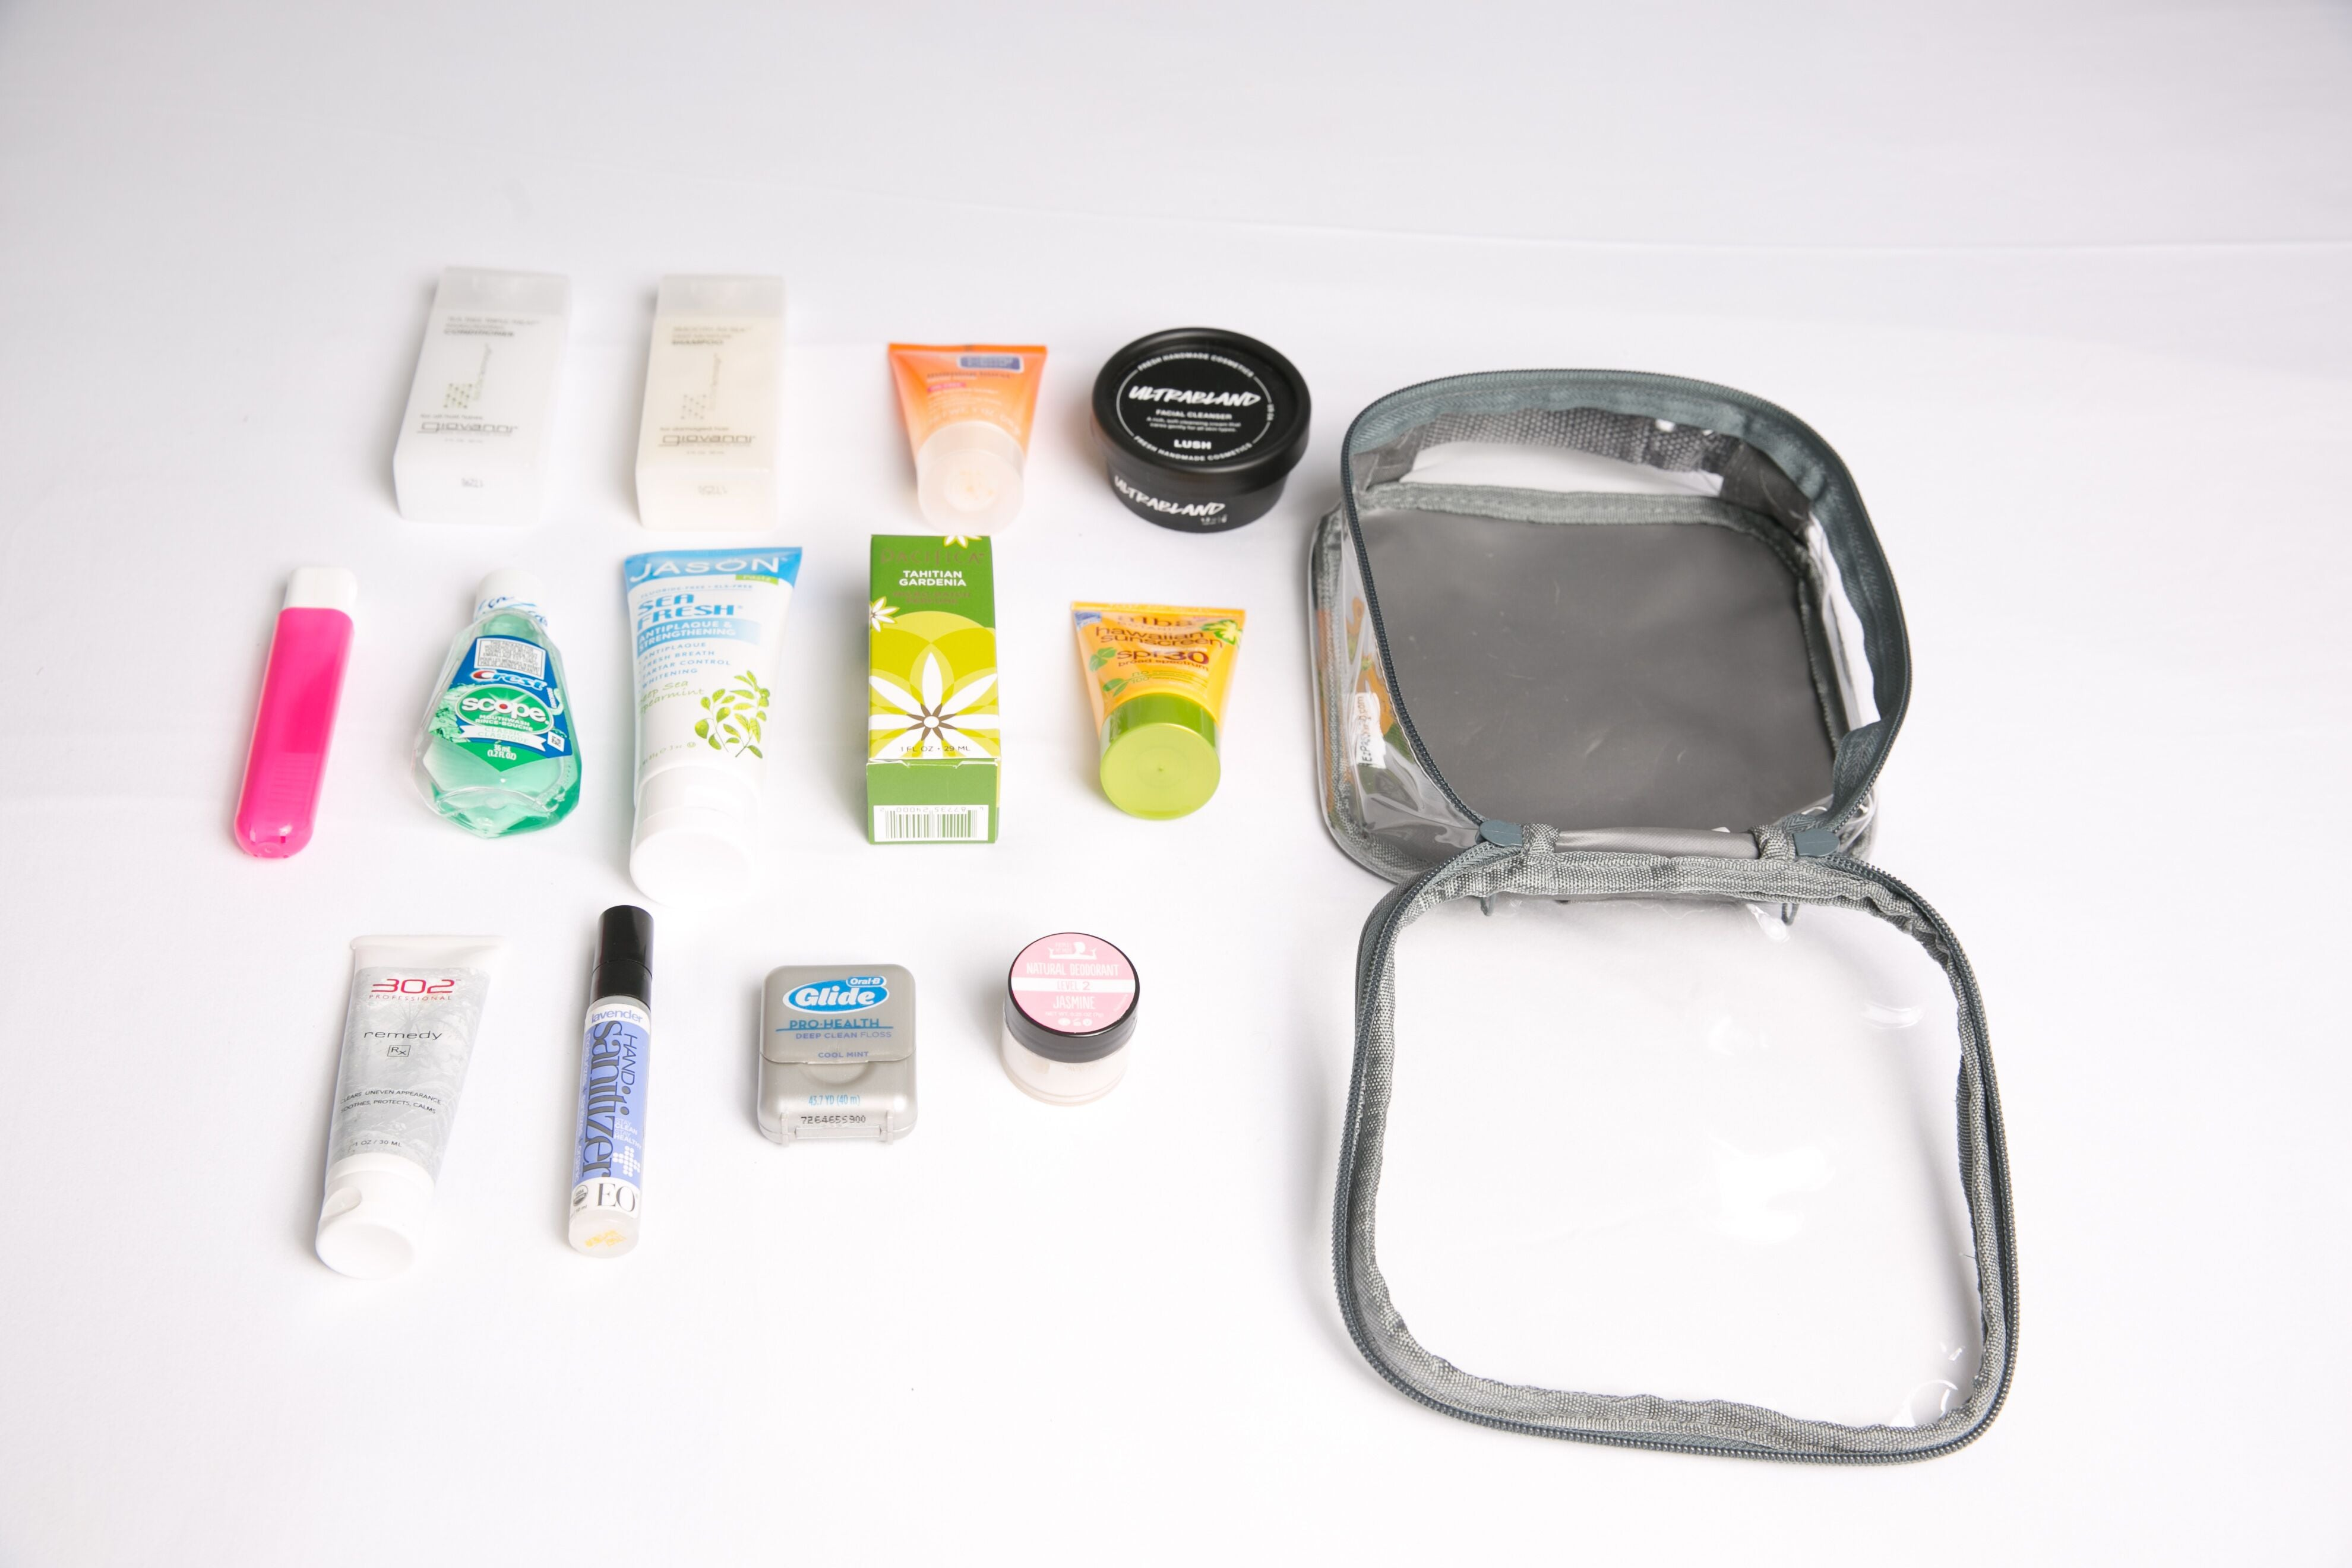 How to prepare toiletries before packing into suitcase